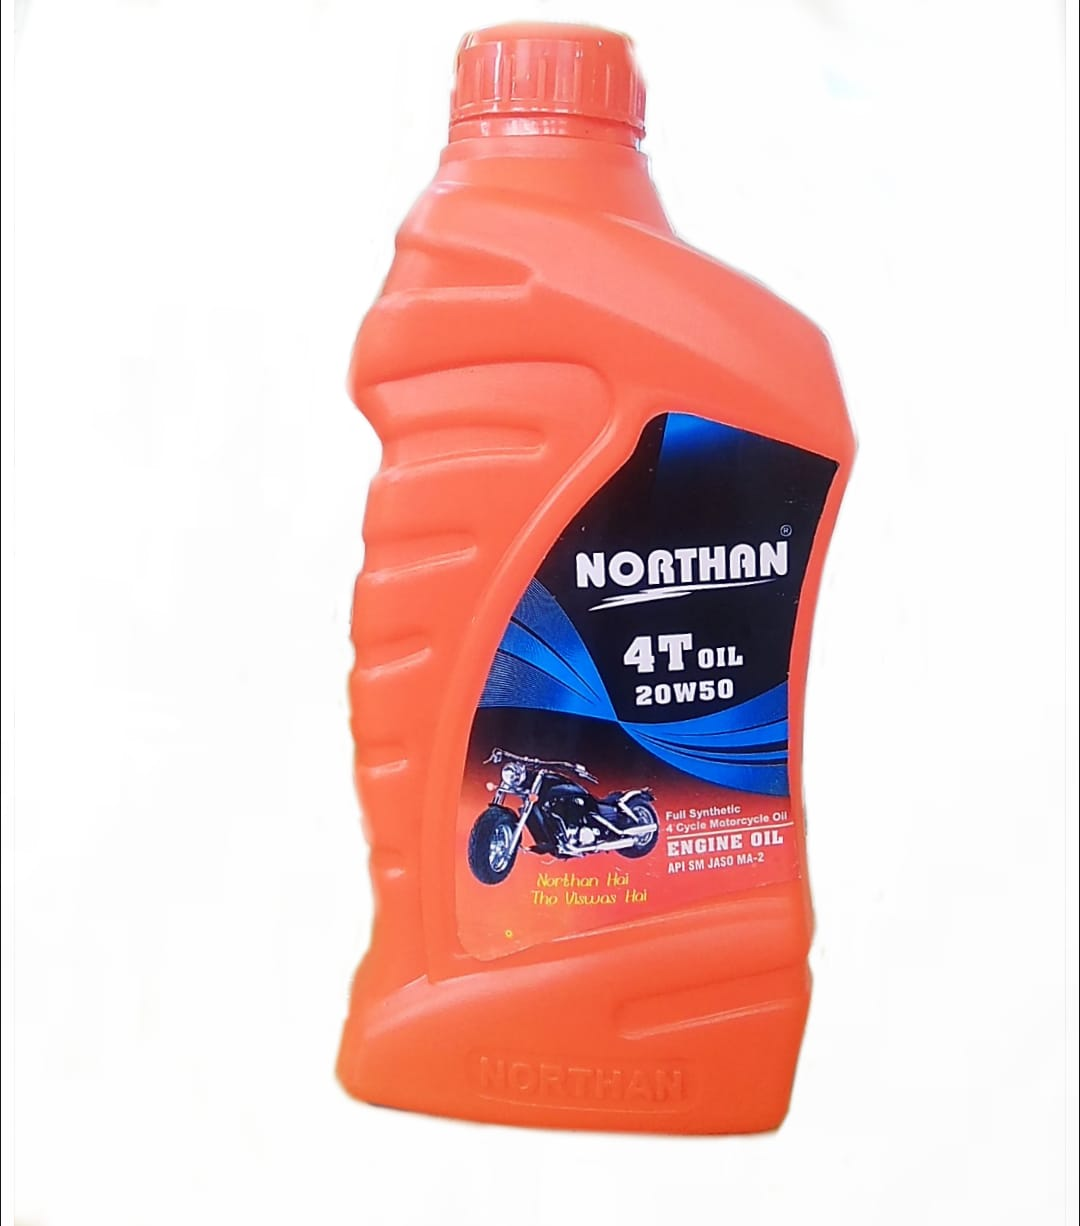 NORTHAN 4T OIL 20W50 | Northan Lubricants |